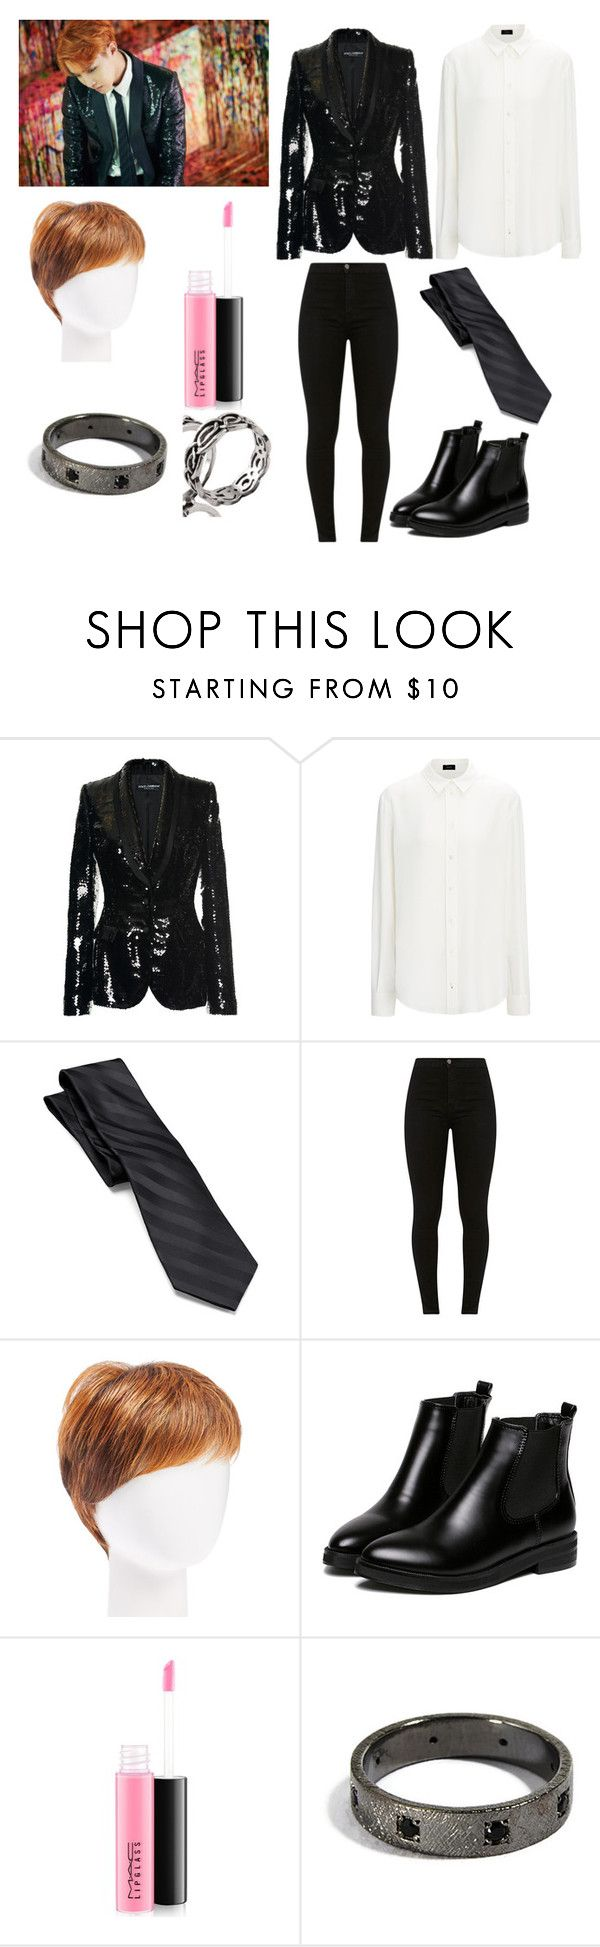 """Bts J-hope(Hoseok)-Inspired ""Mama""(short film) Outfit"" by sassmaster42068 ❤ liked on Polyvore featuring Dolce&Gabbana, Croft & Barrow, Hairdo, WithChic and MAC Cosmetics"